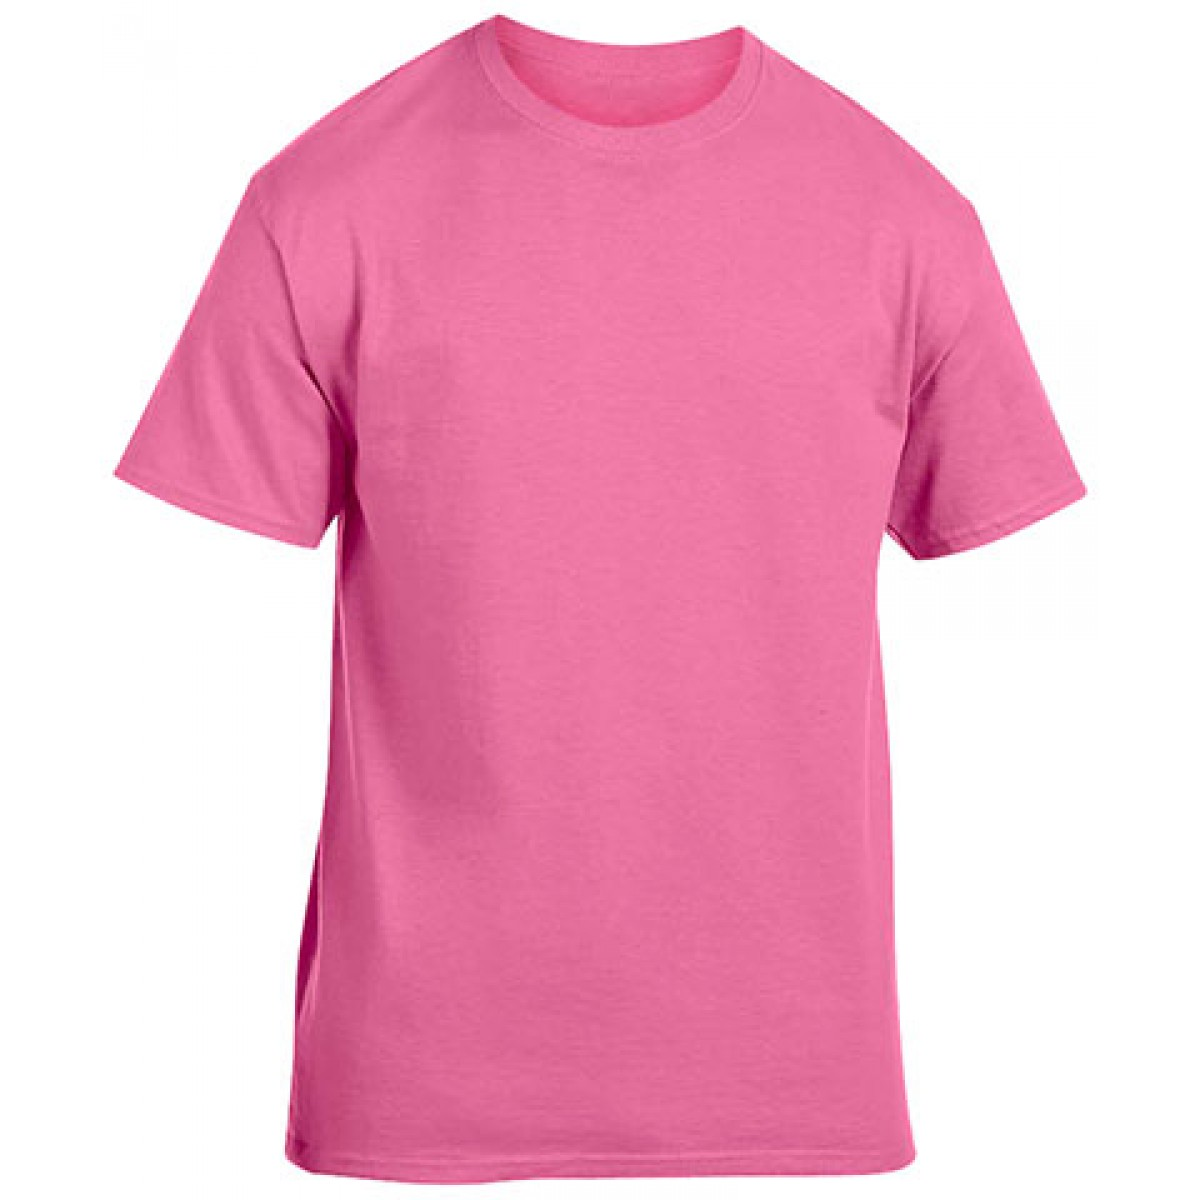 Heavy Cotton Activewear T-Shirt-Safety Pink-XL